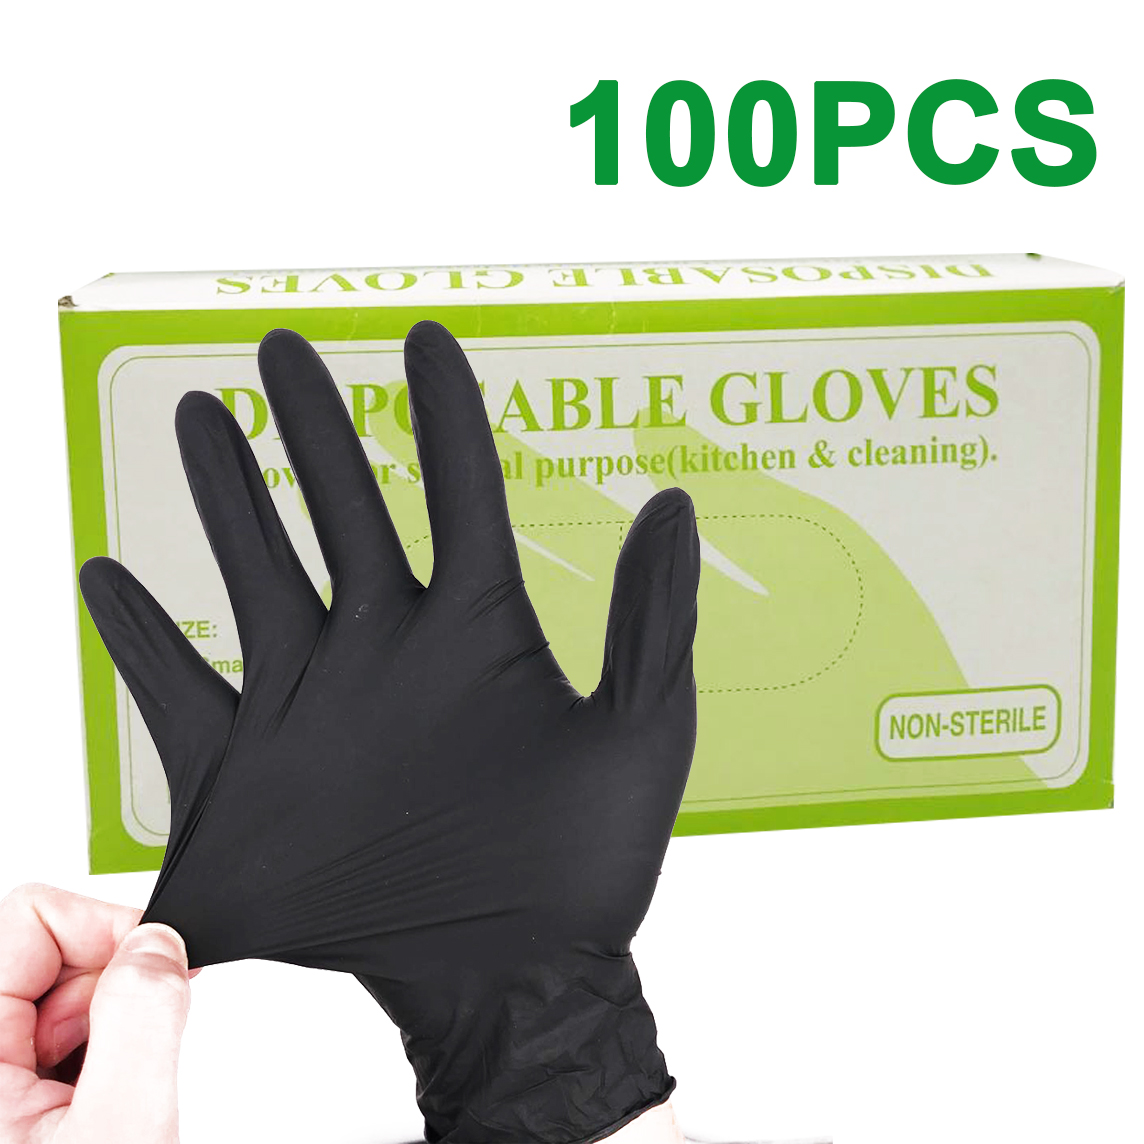 100pcs/lot Nitrile Gloves Black Food Grade Waterproof Allergy Free Medical Disposable Work Safety Gloves Nitrile Gloves Mechanic